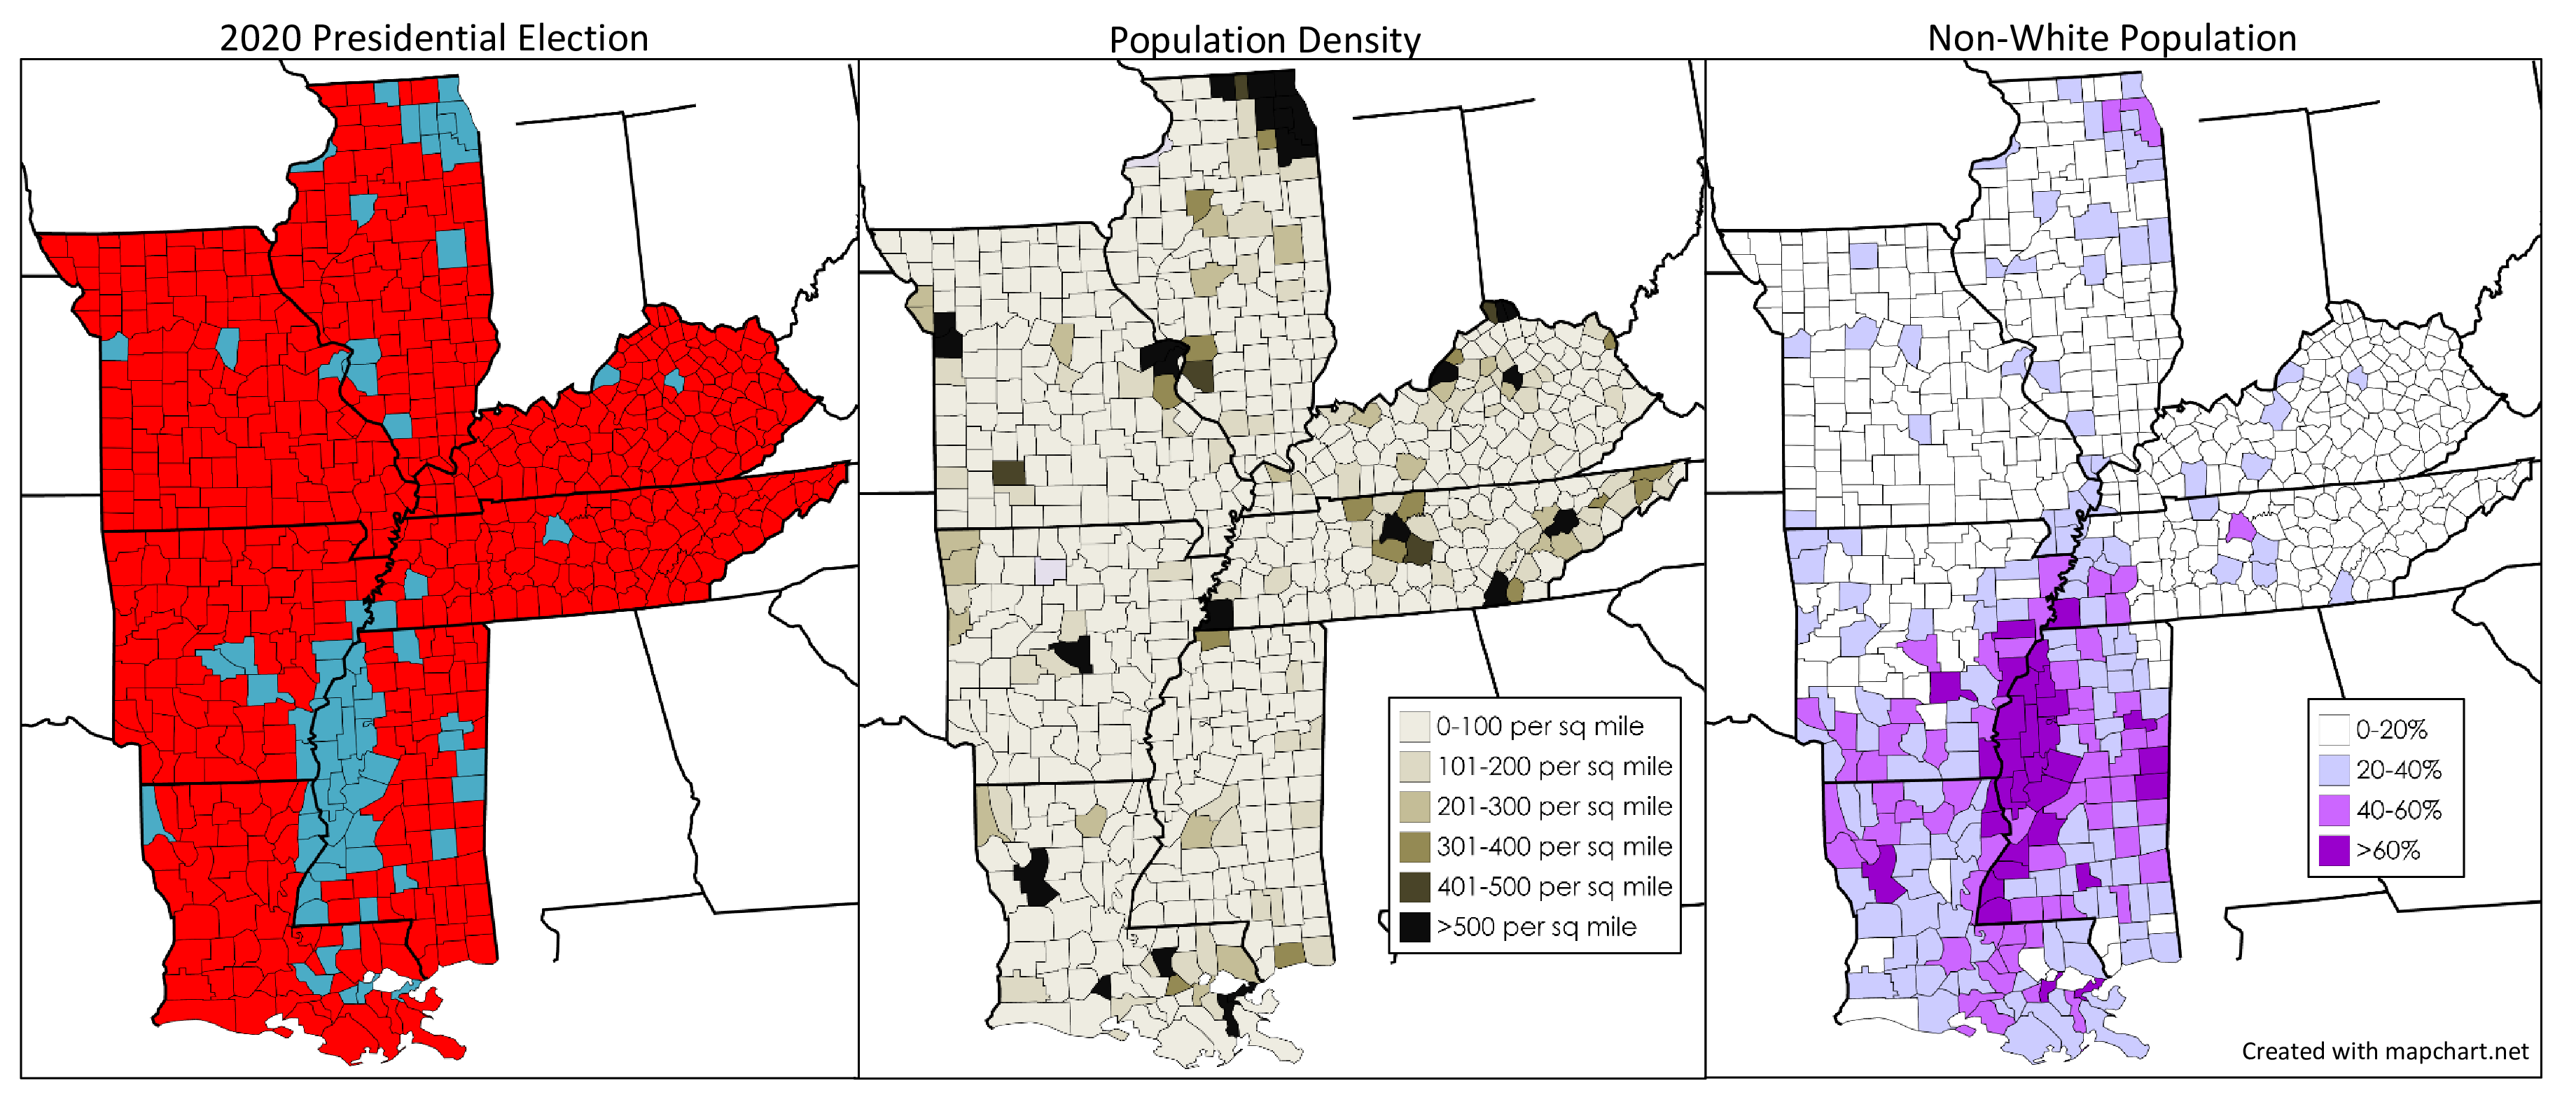 Mississippi Alluvial Plain 2020 presidential map, population density, and non-White population